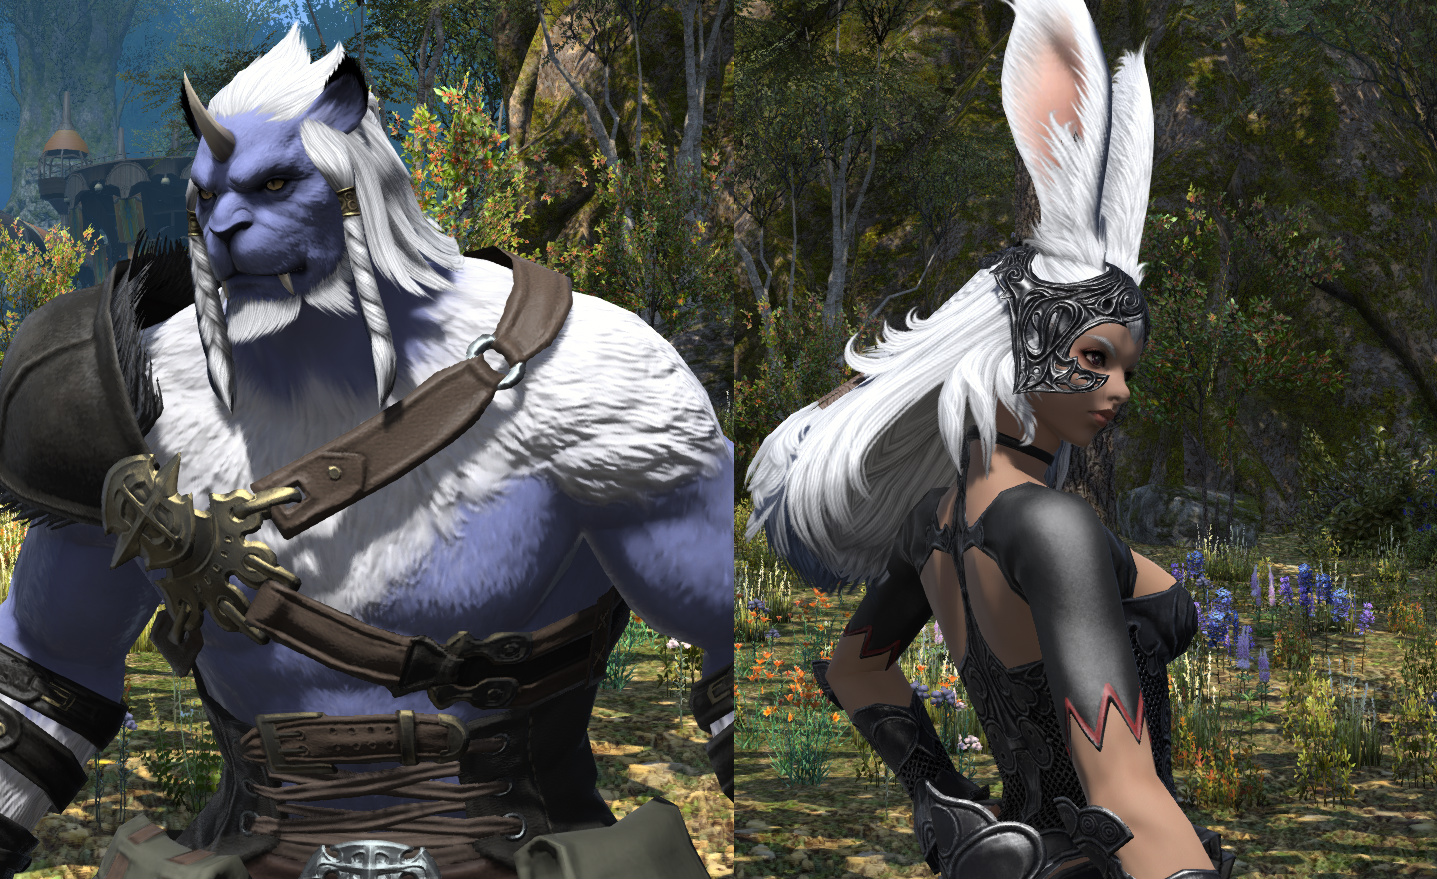 Final Fantasy 14: Shadowbringers' Director on the Viera and Hrothgar